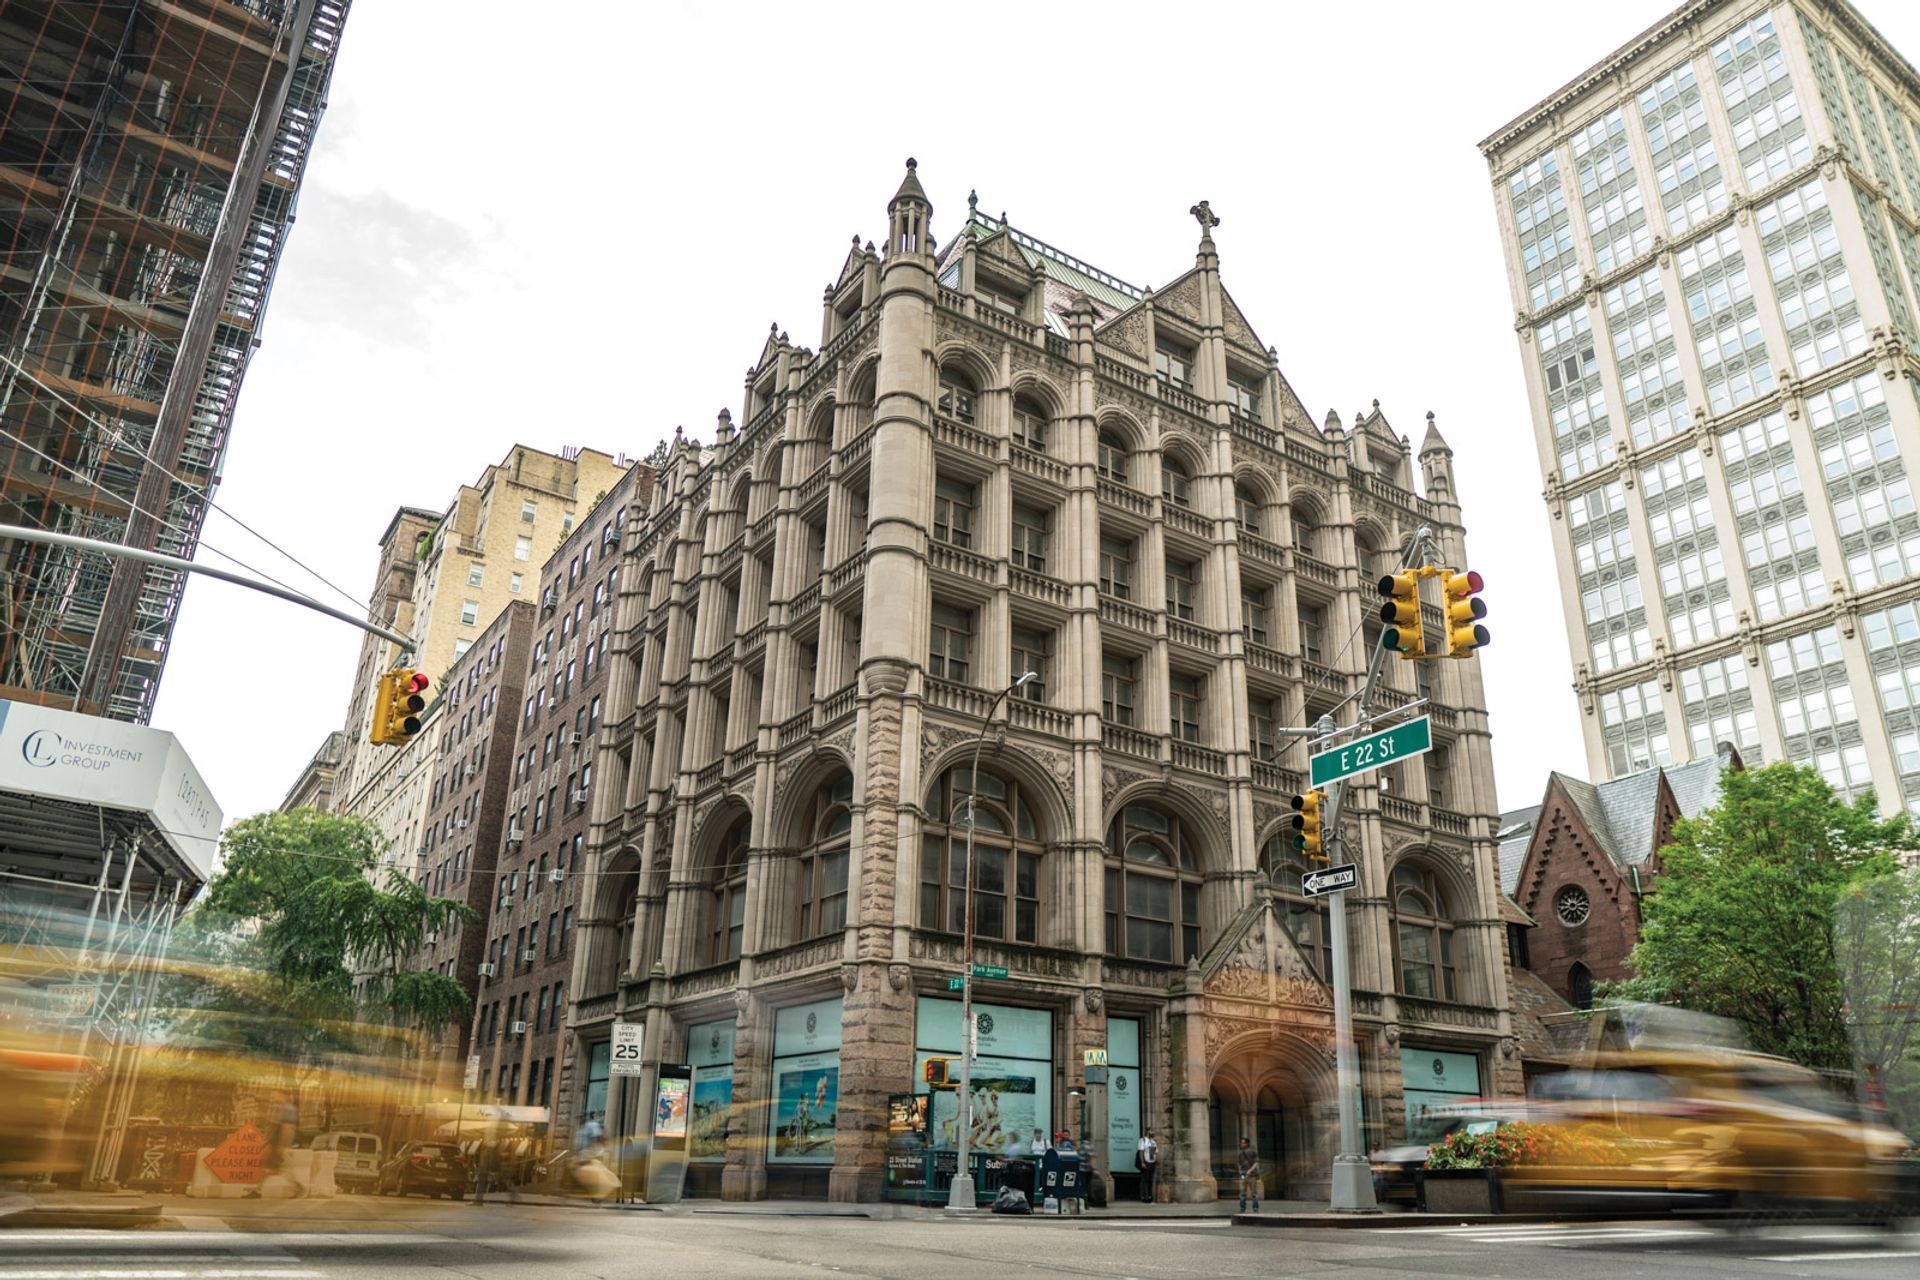 Fotografiska New York is taking over all six floors of the landmarked Church Missions House on Park Avenue South Photo: courtesy of CetraRuddy